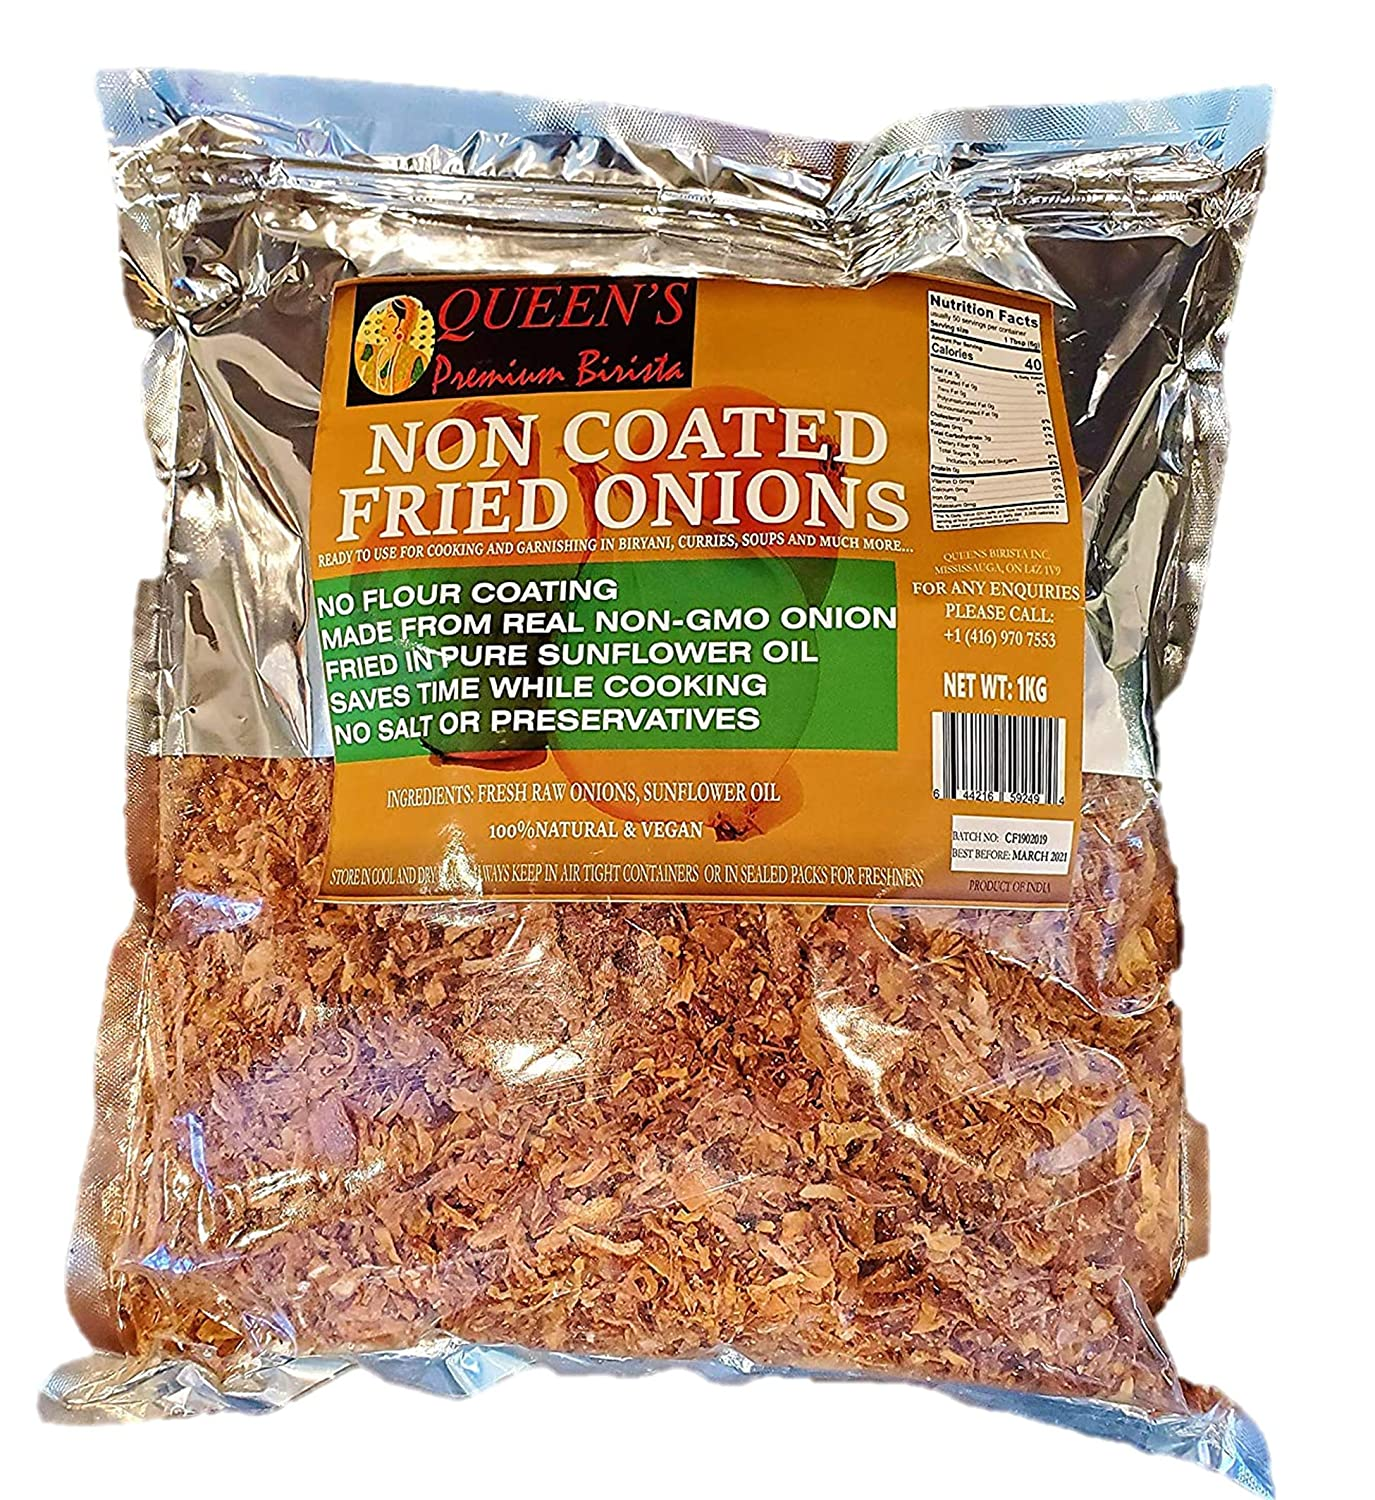 Queen's Non-Coated (NO Flour Coating) Fried Onions- 100% Natural & Vegan, GMO Free, Gluten Free, (2.2 Pounds)